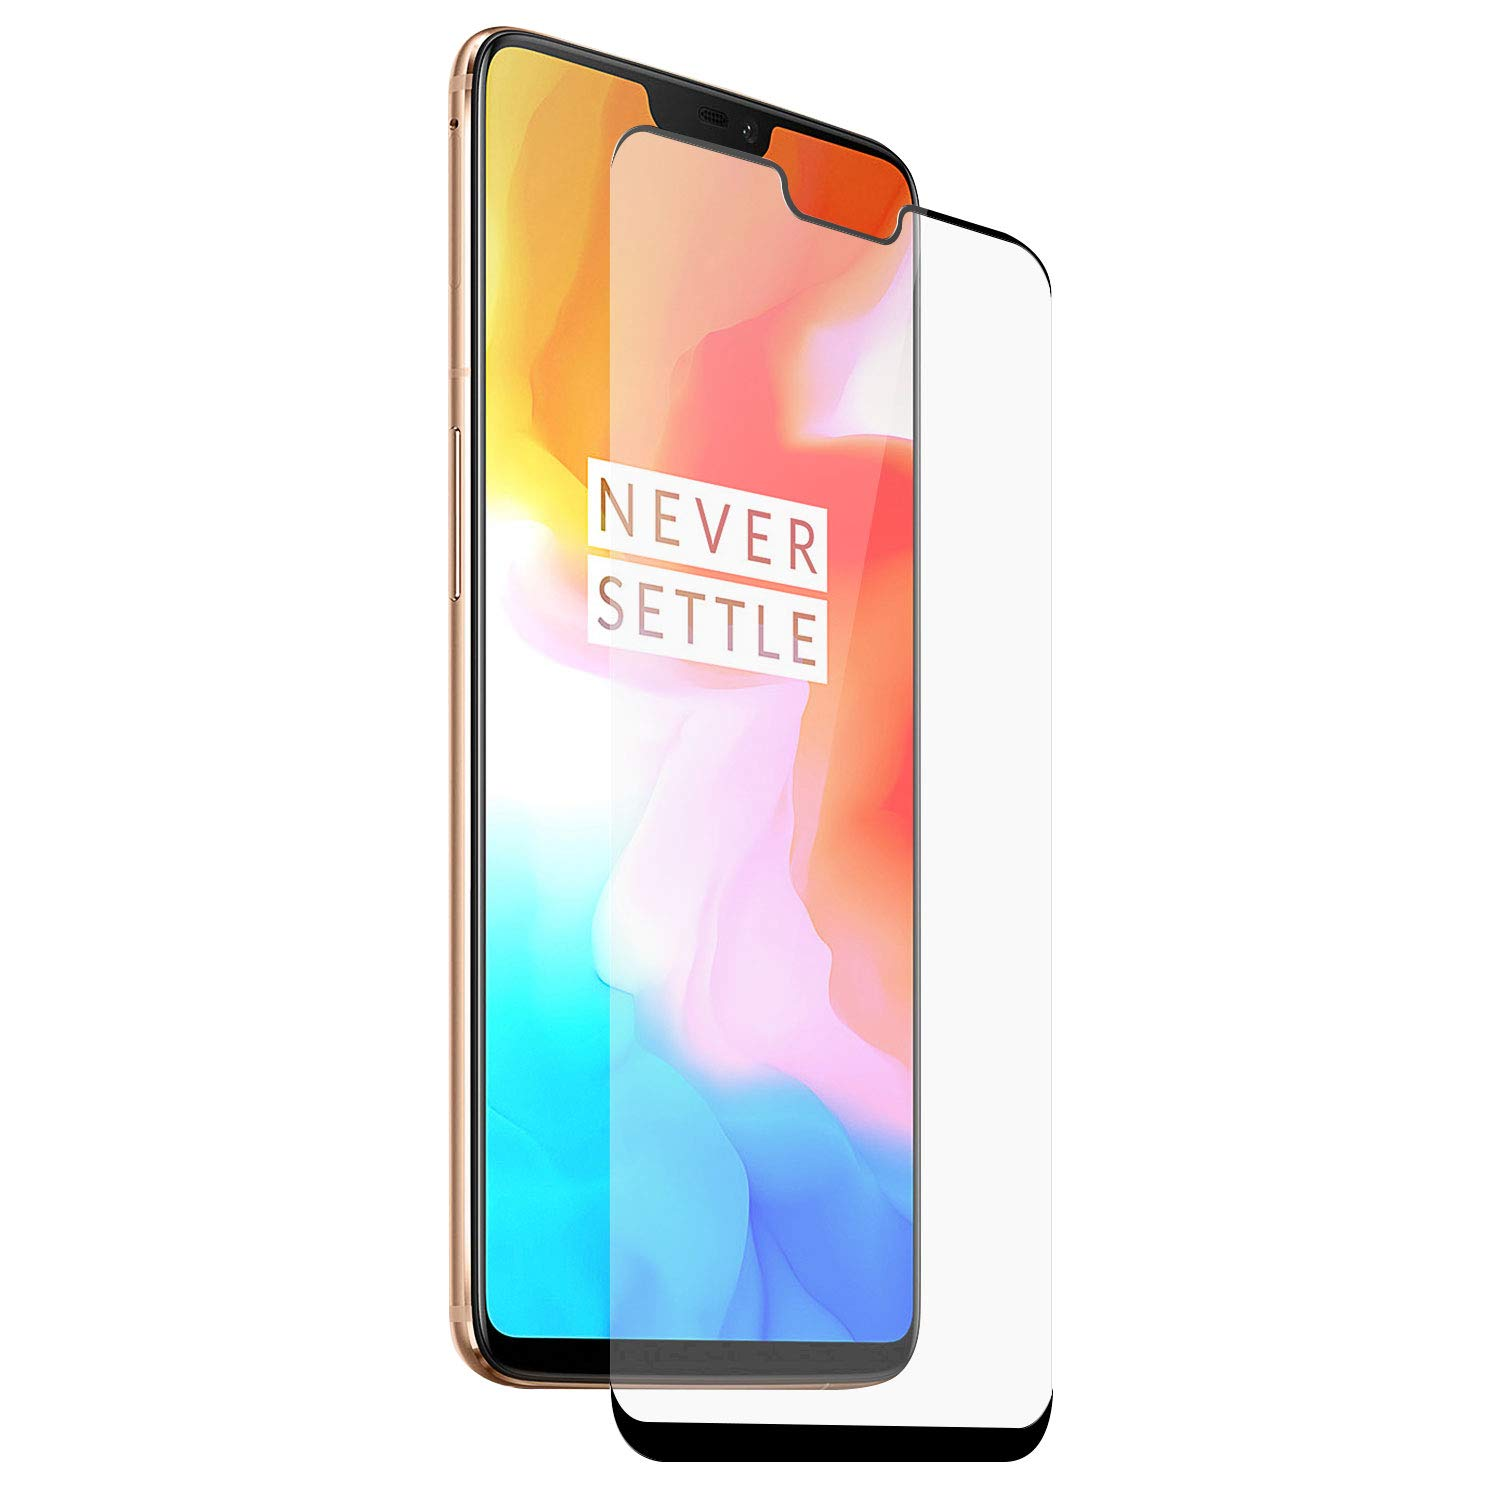 Olixar for OnePlus 6 Screen Protector - Tempered Glass 9H Rated - Shock Protection - Easy Application, Card and Cleaning Cloth Included - Clear